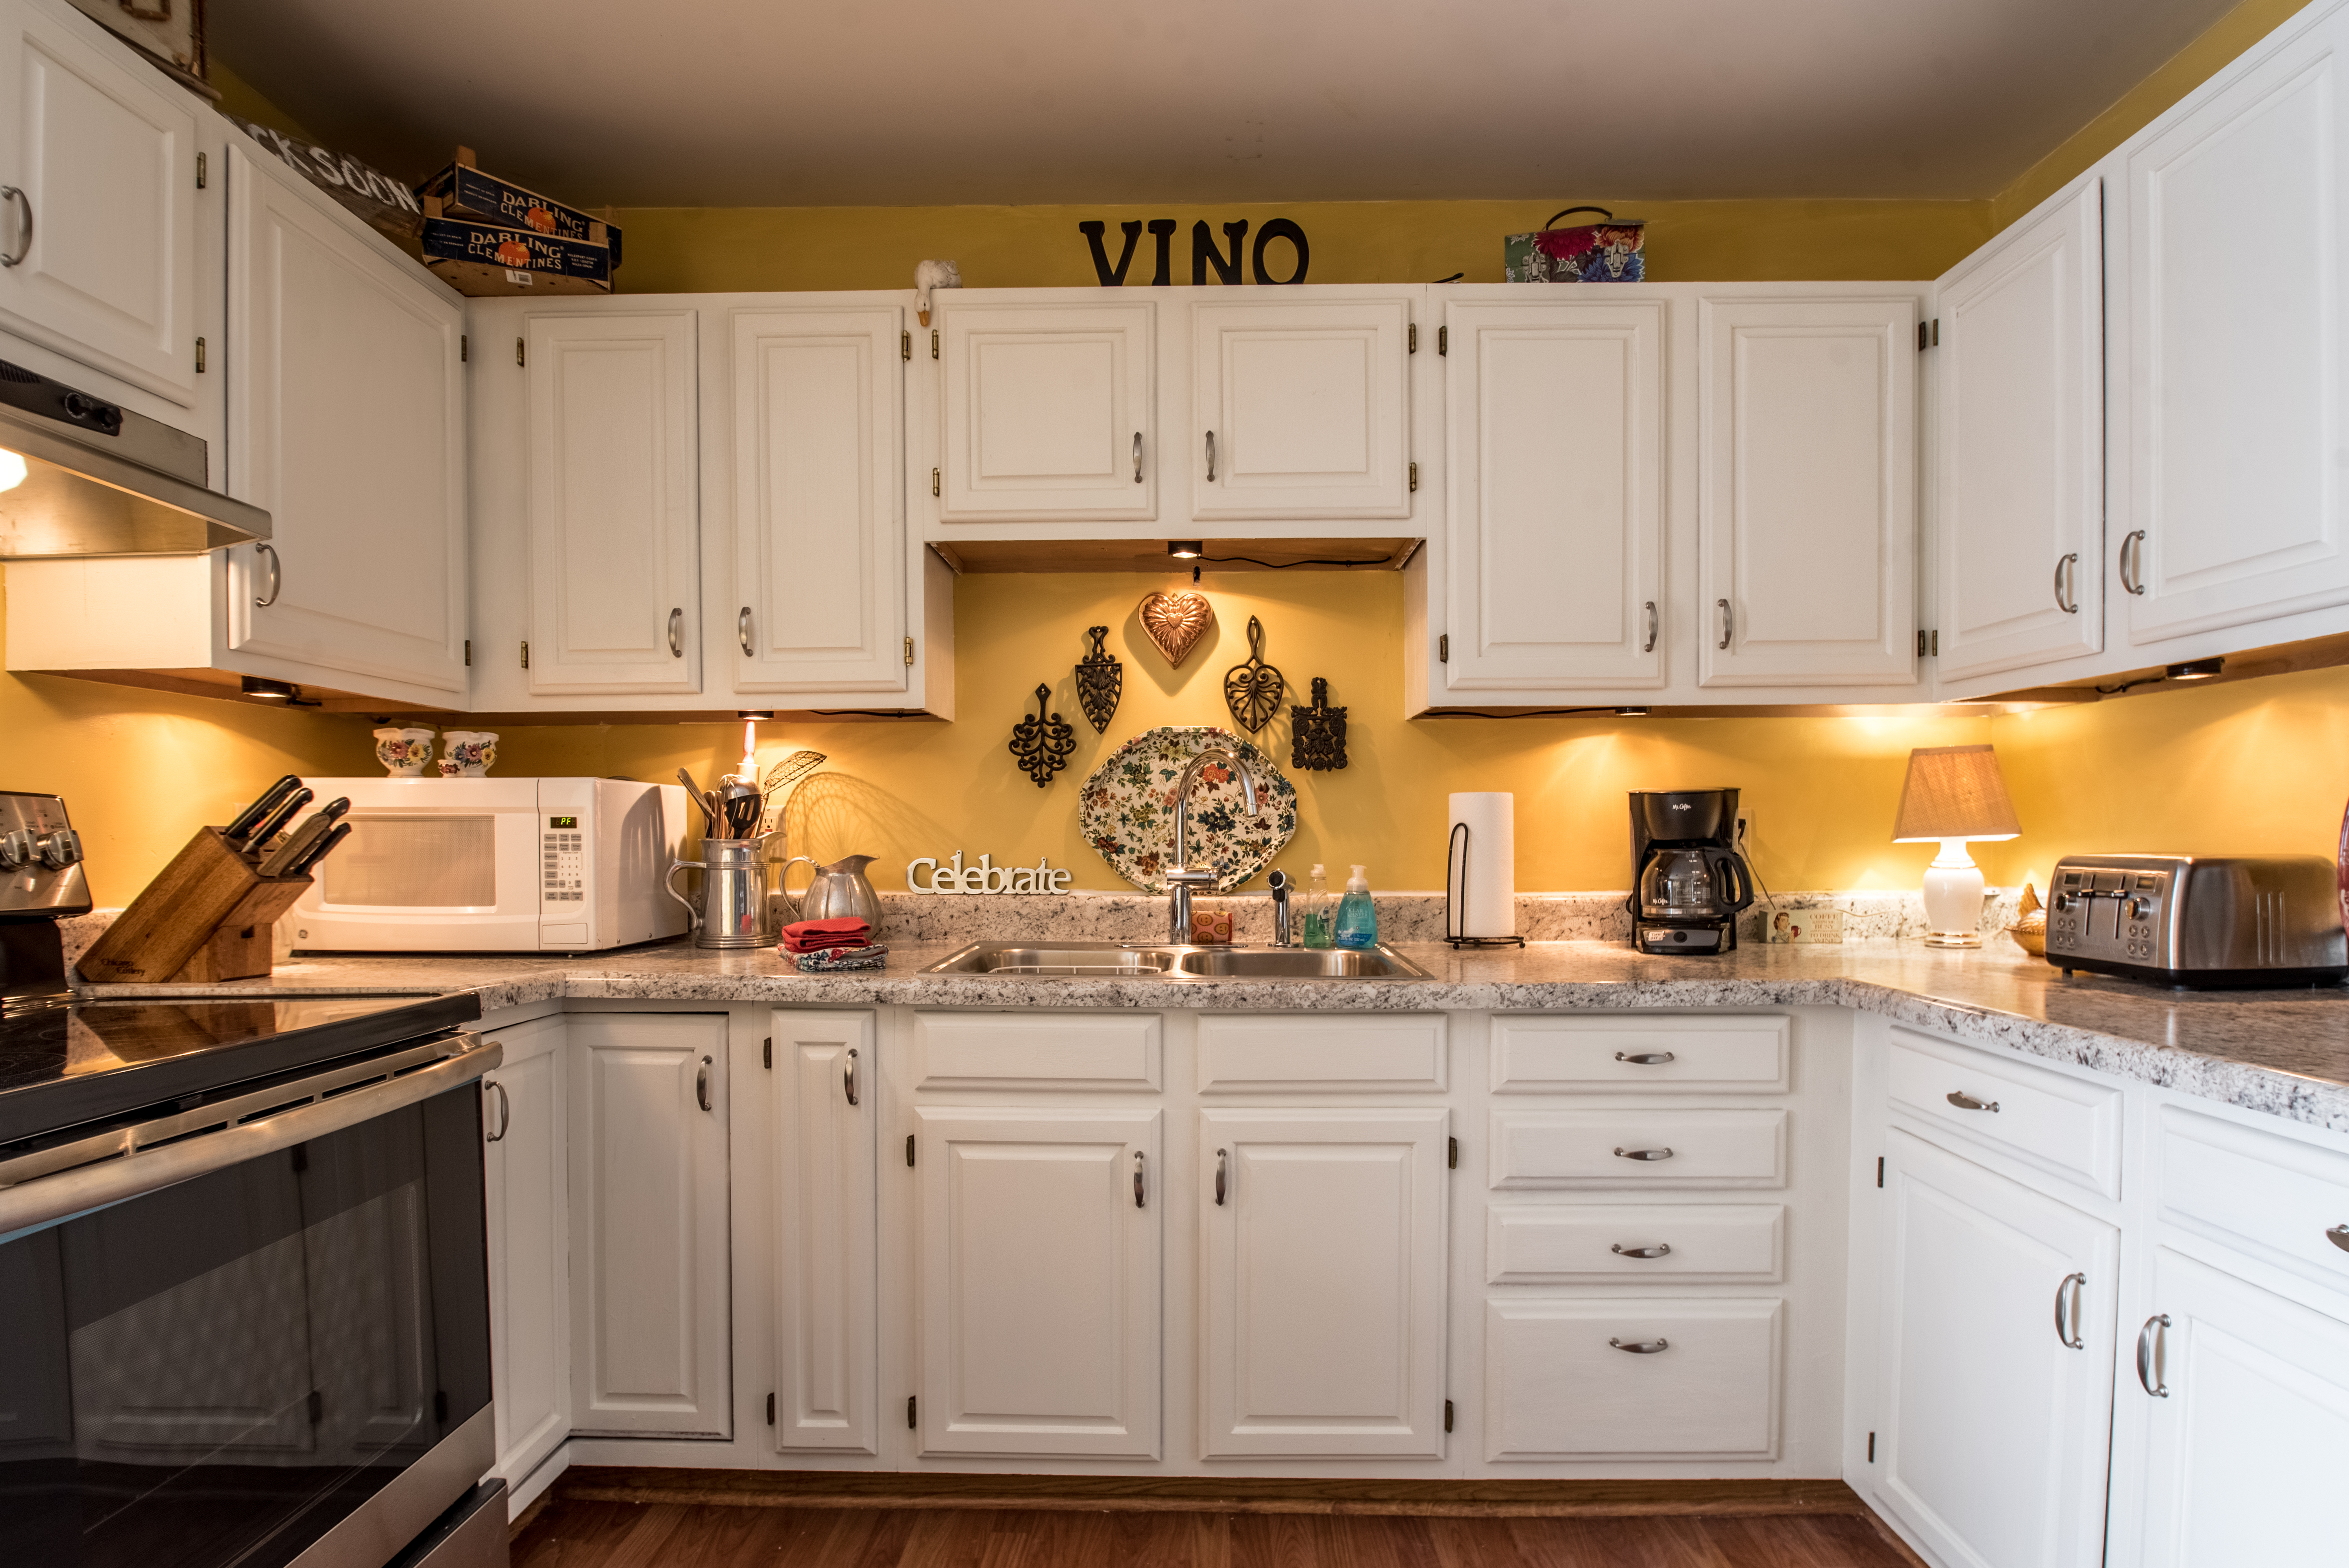 Updated kitchen with everything you need!